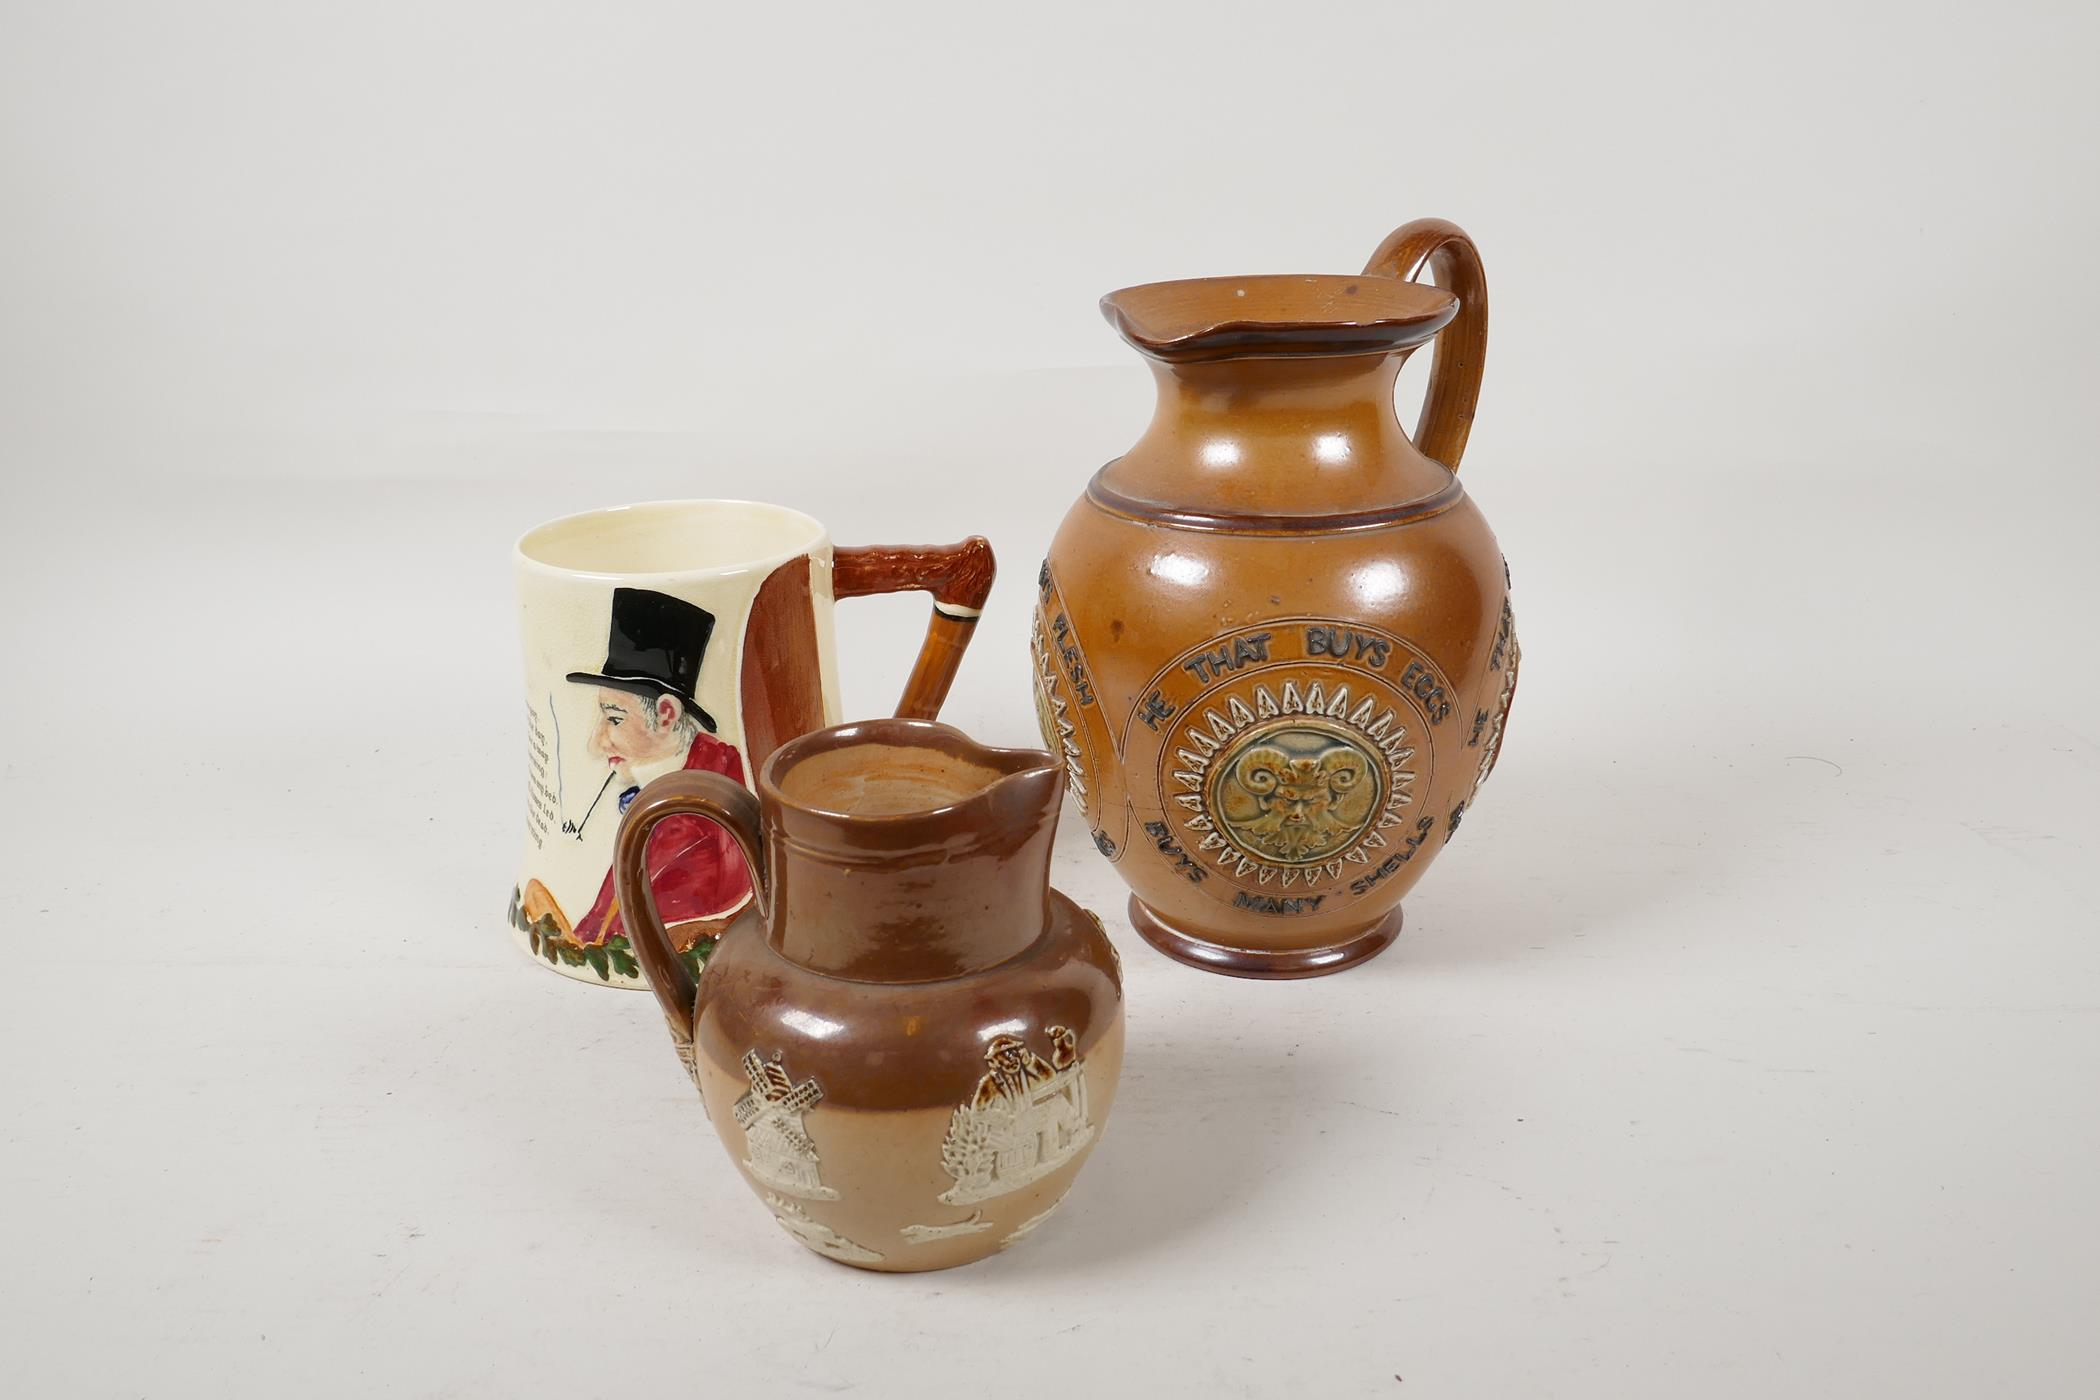 A Doulton Lambeth stoneware jug bearing the legend 'He that buys good ale' embossed with various